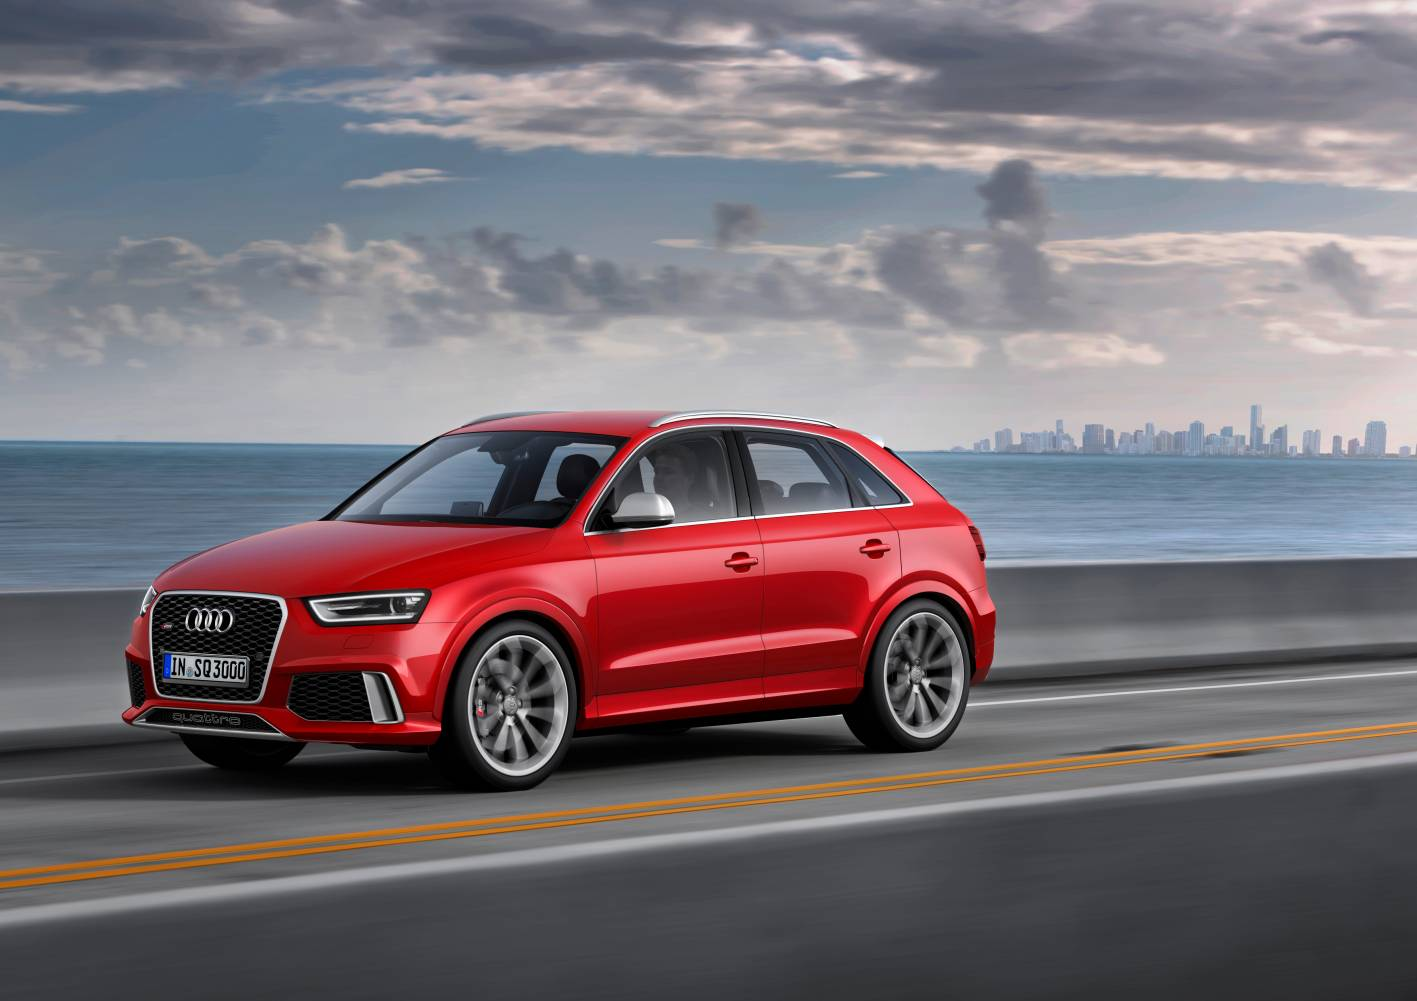 Audi Cars News Audi Rs Q3 Arriving In Feb 2014